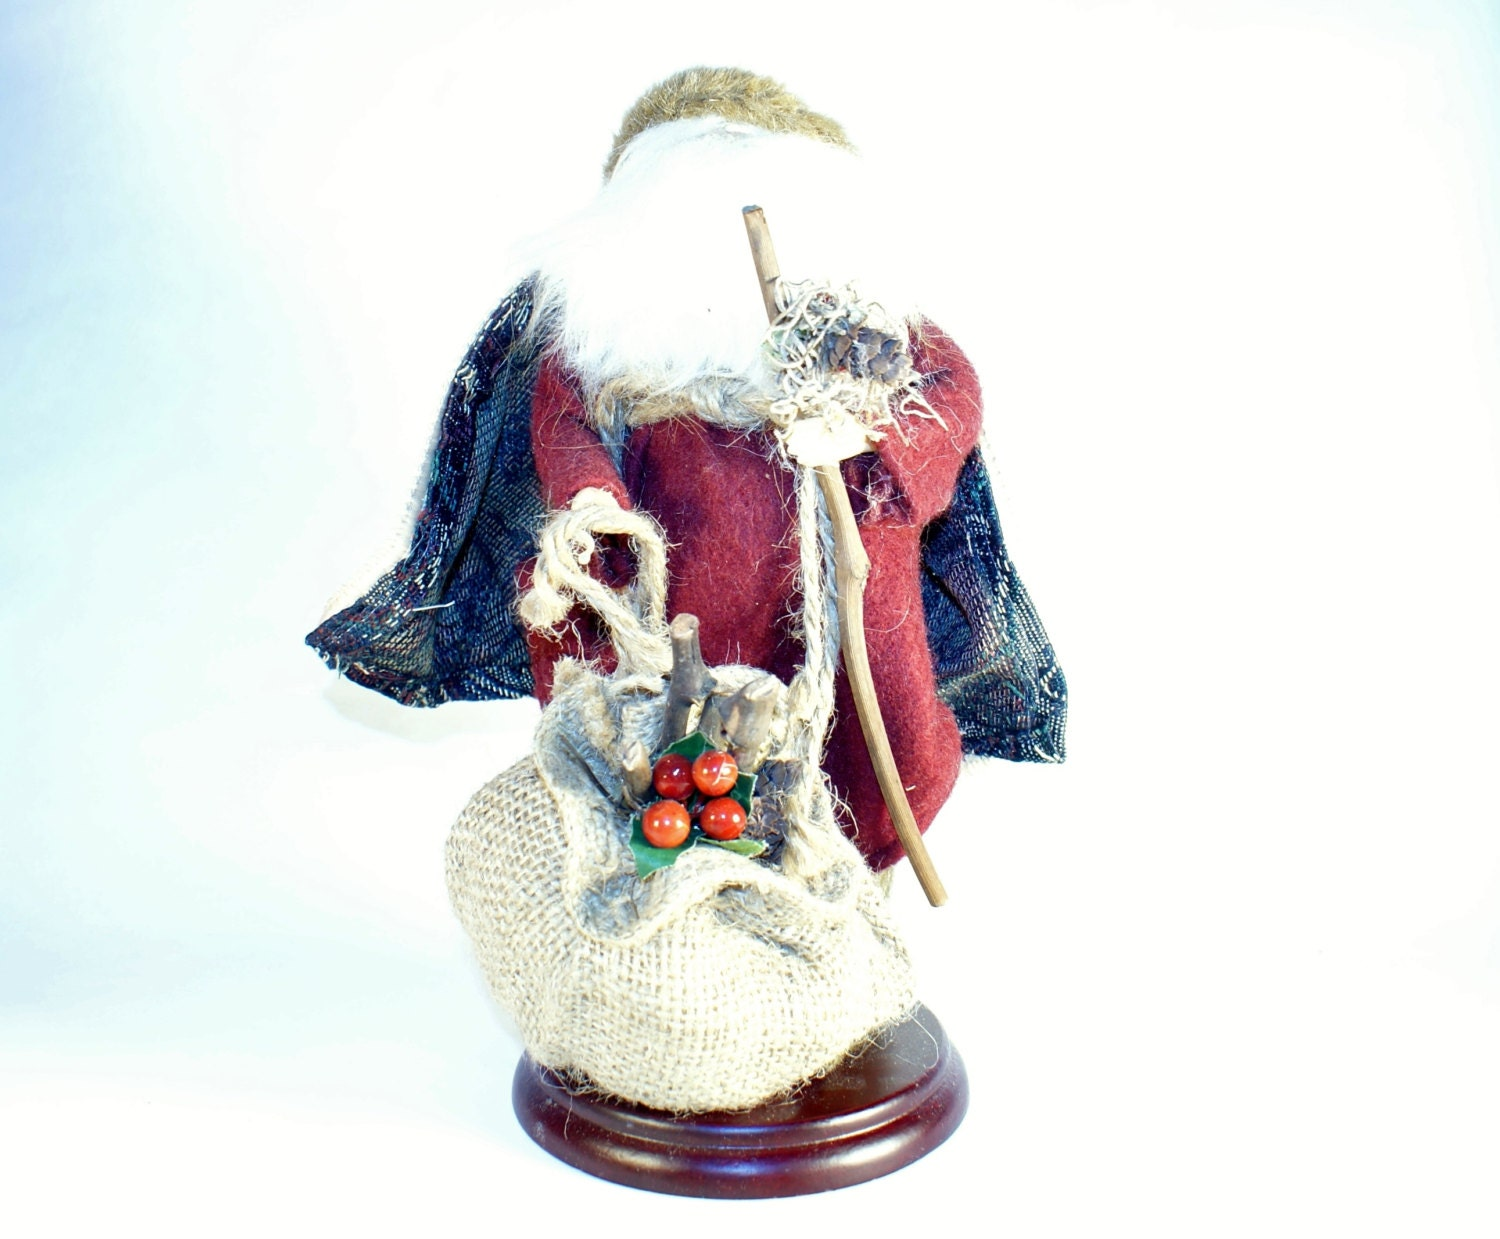 Santa statue claus christmas figurine holiday tall decoration